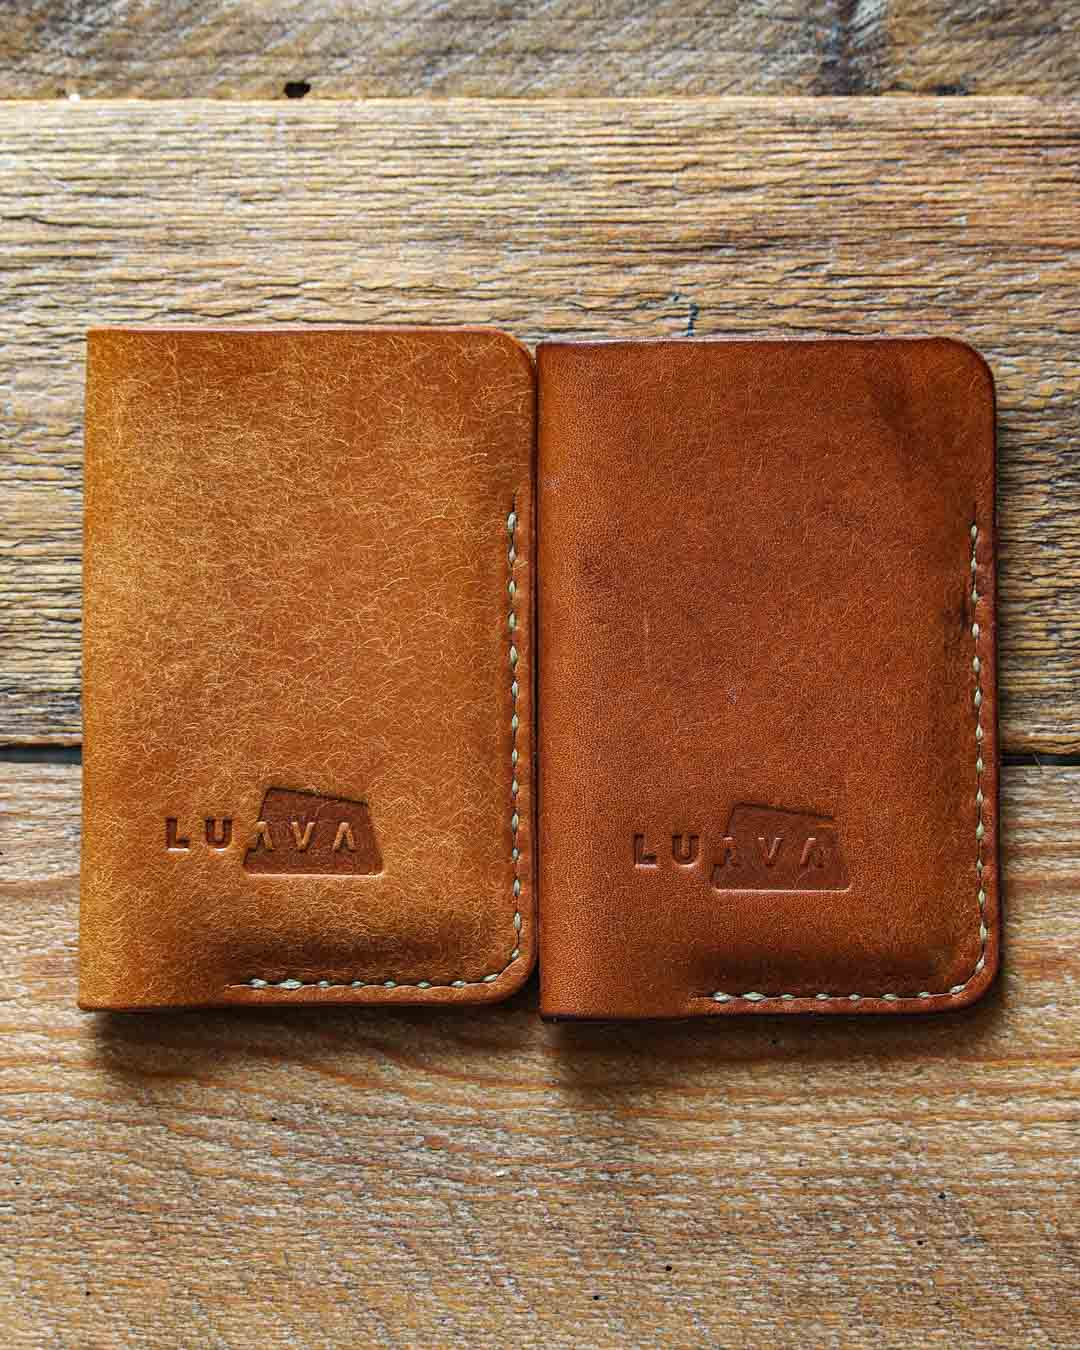 Luava leather card holder pueblo cognac patina